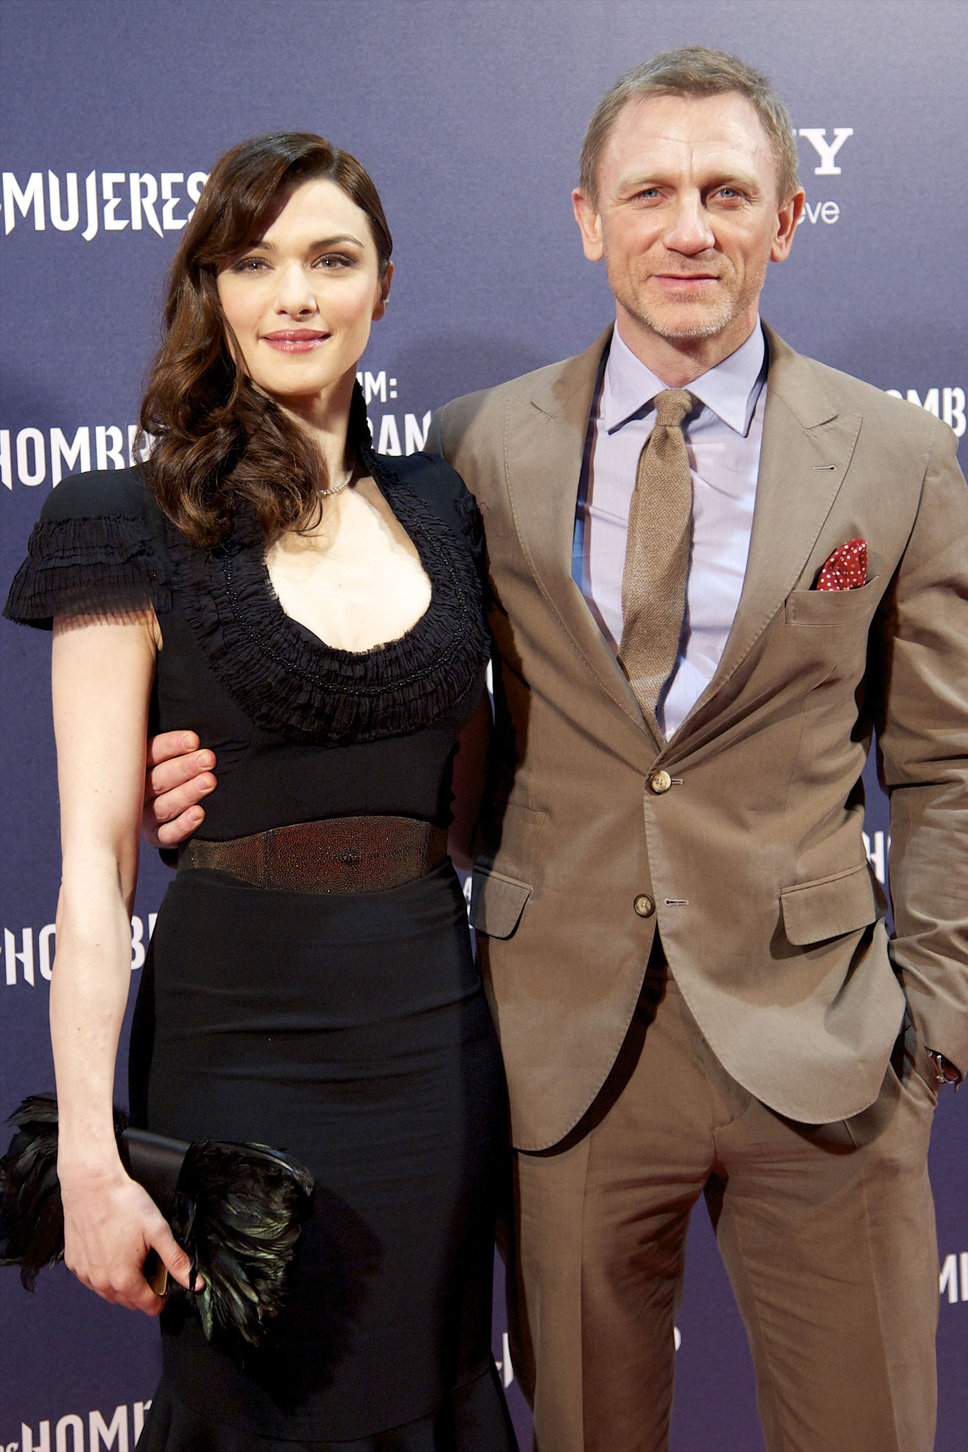 Daniel+Craig+With+His+Wife+Rachel+Weisz+2012+Hot+Photo+04.jpg